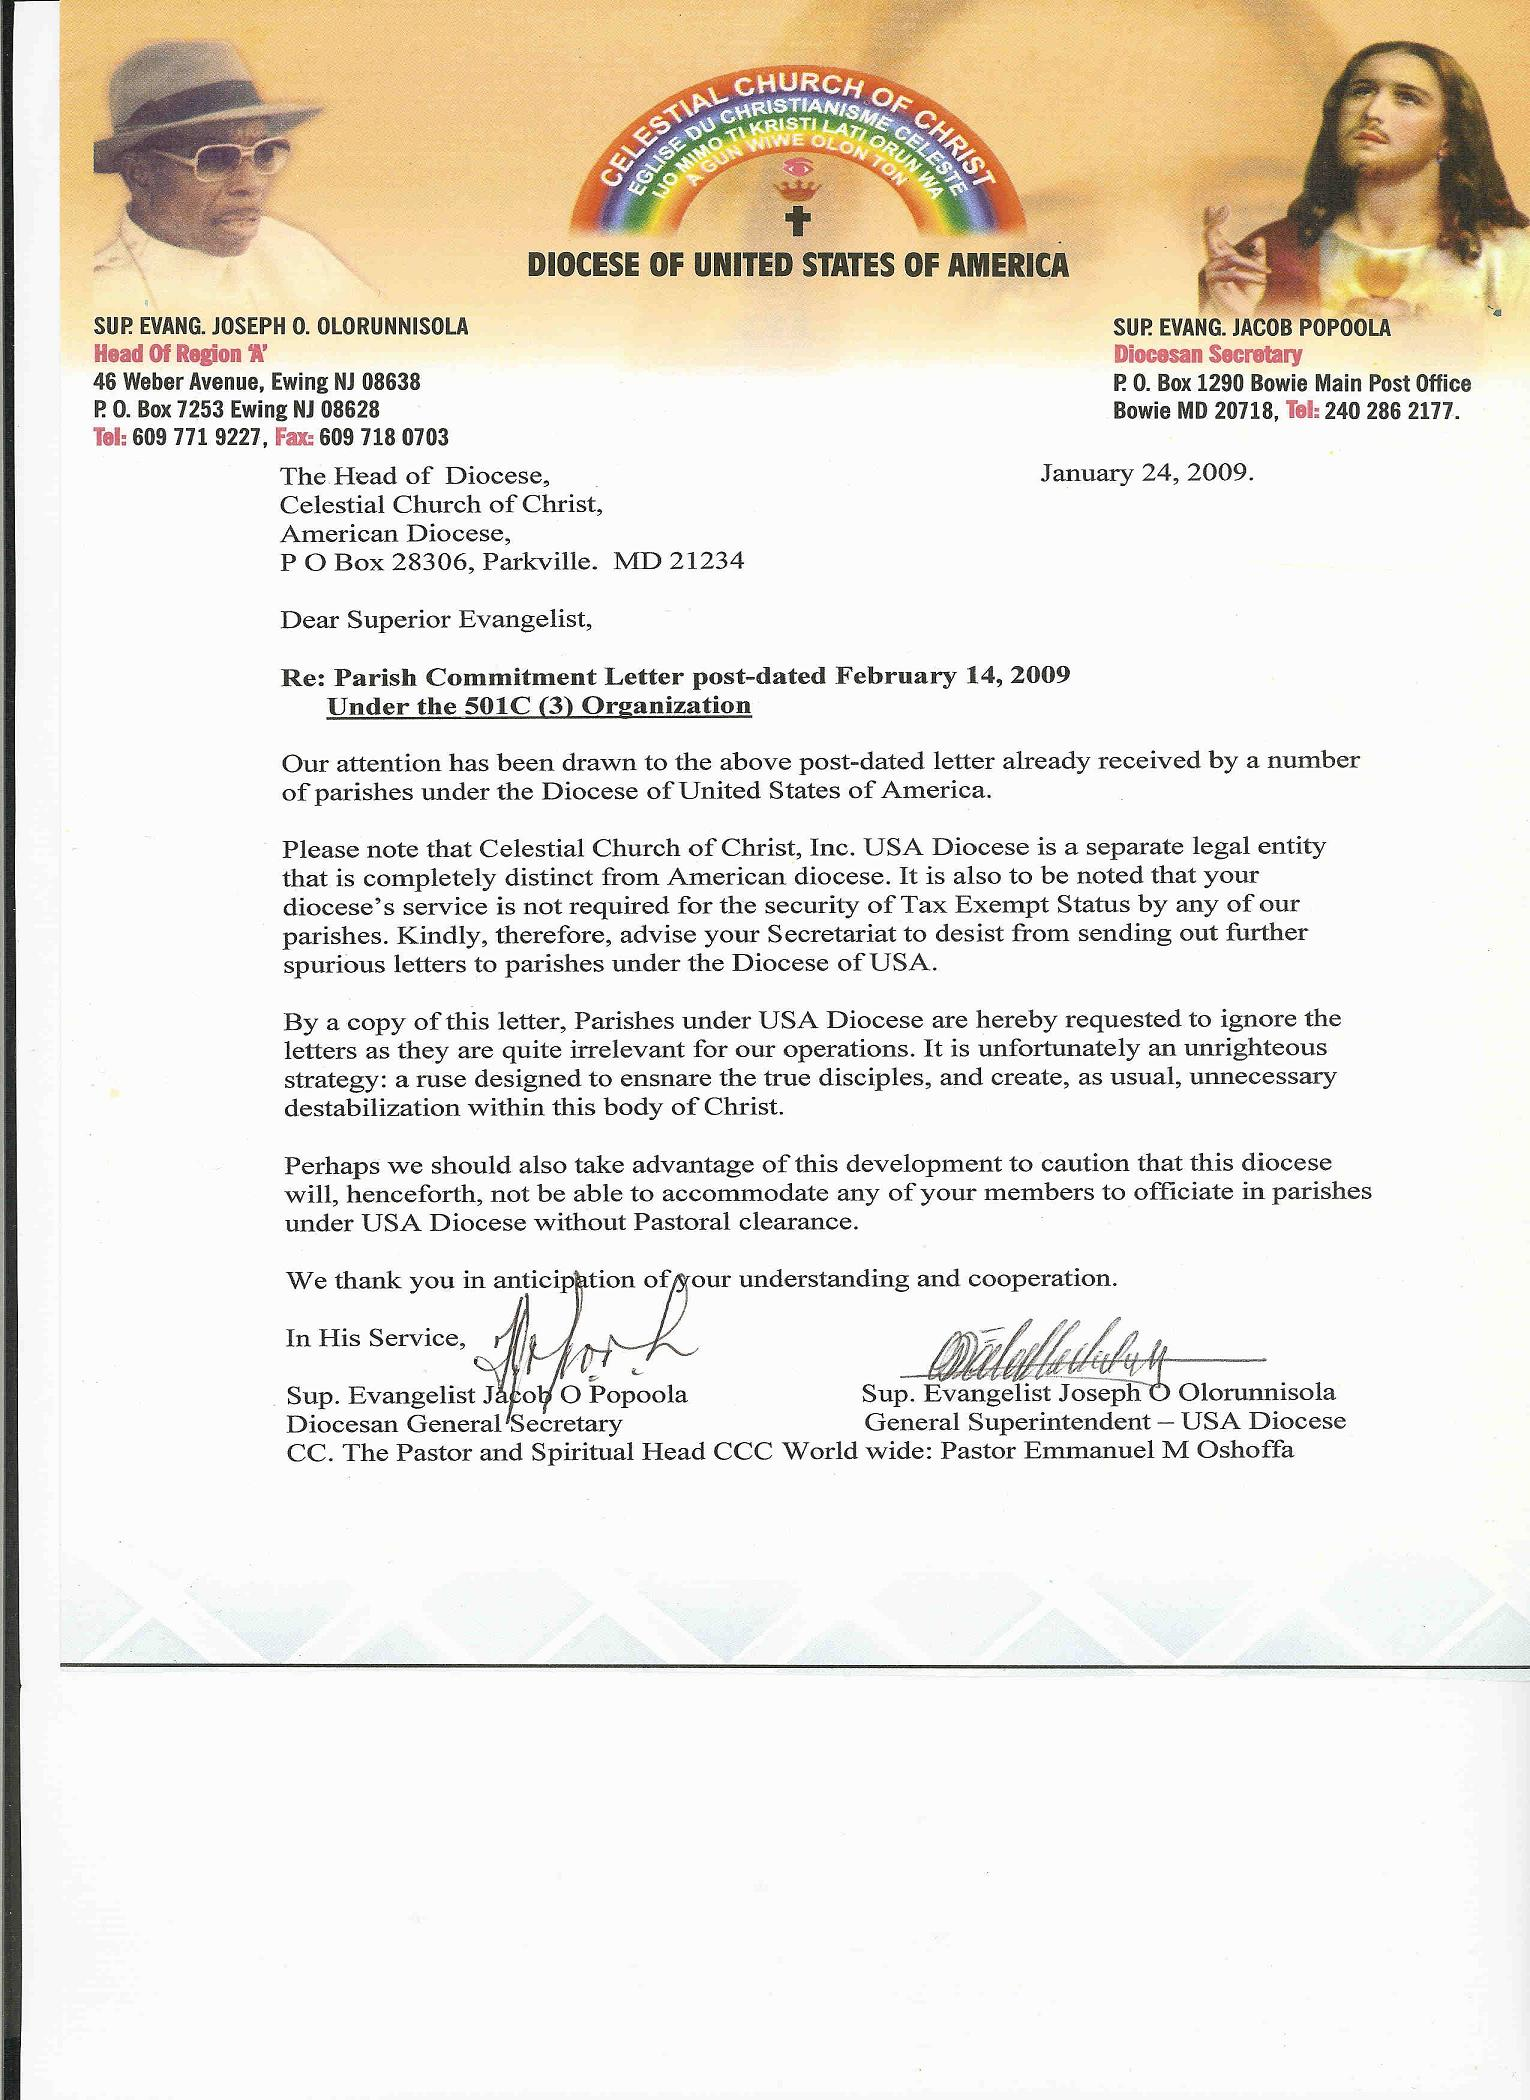 Hiseminence rt to our dismayed a replied letter written by the usa diocese diocese of united state of america that is pastor publicscrutiny Gallery